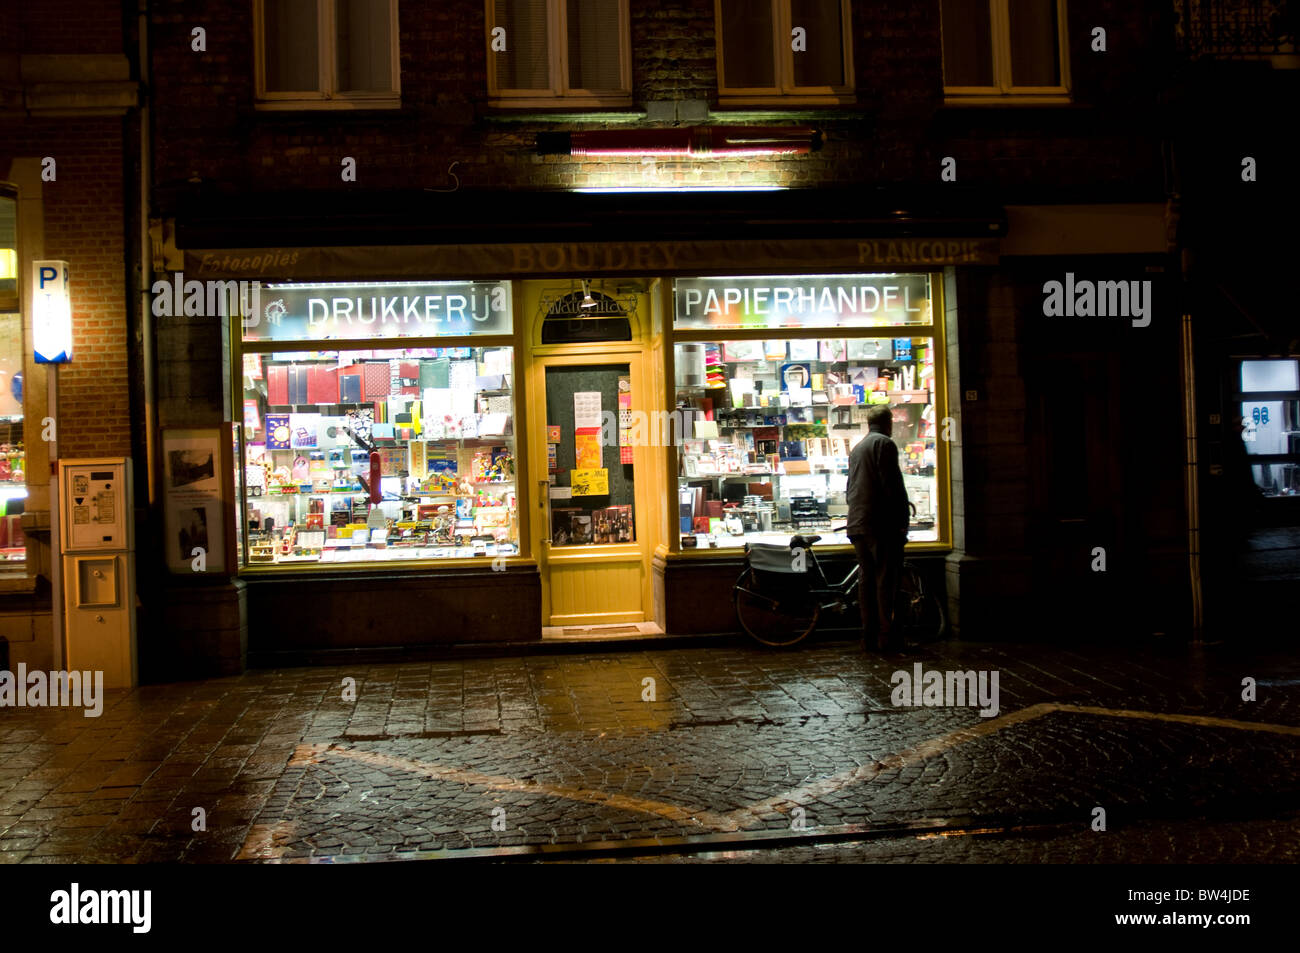 A man looks into the window of a shop of a wet and windy night in Ypres, Belgium - Stock Image